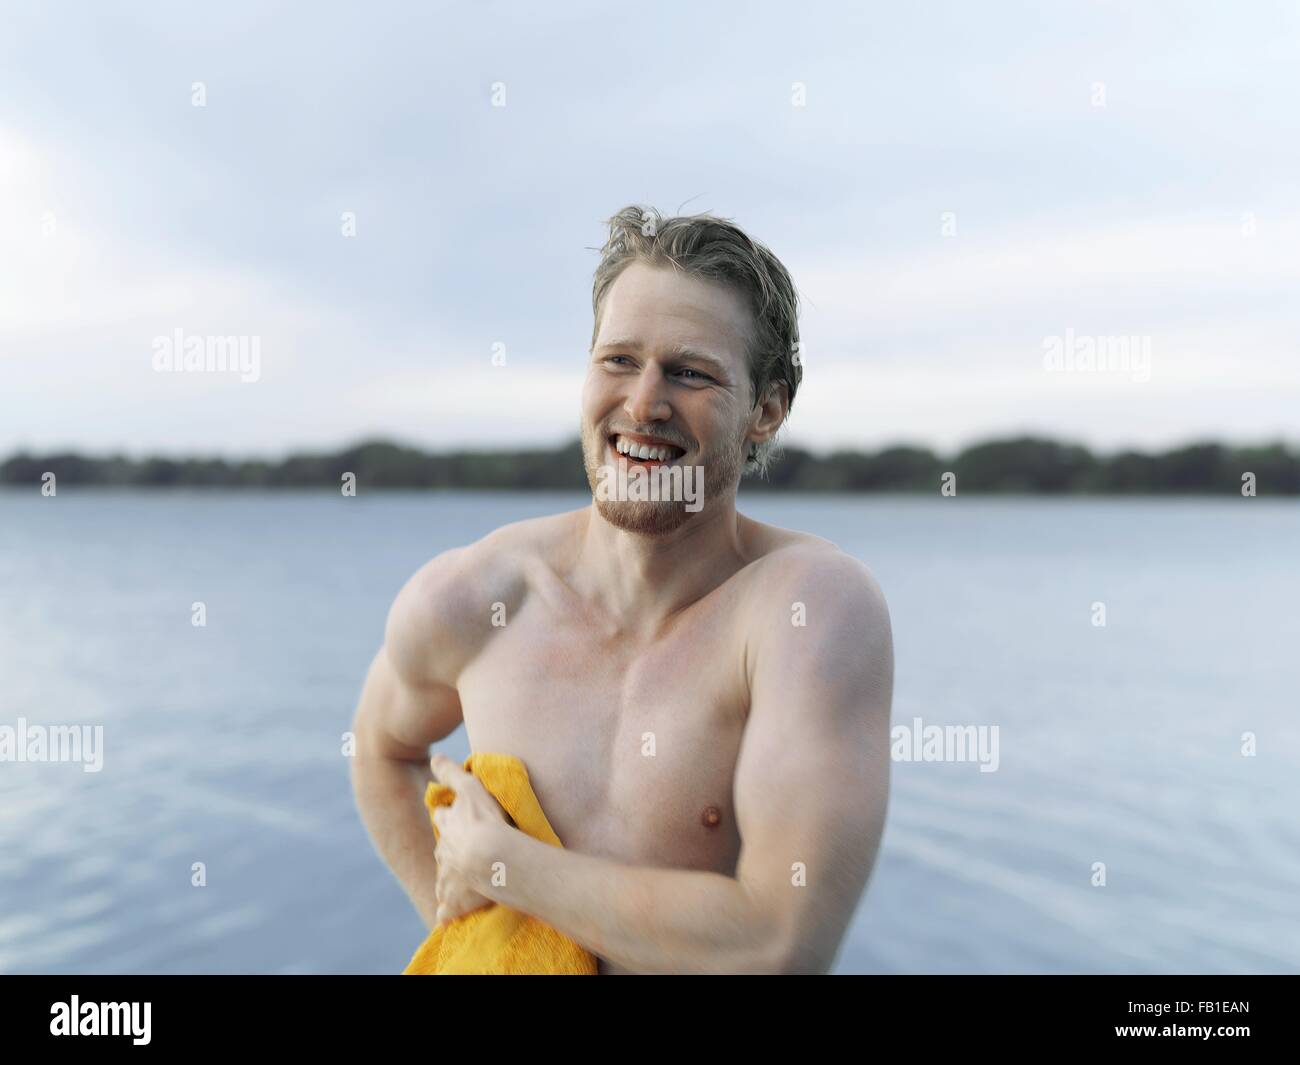 Bare chested young man drying off with towel, looking away smiling, Copenhagen, Denmark - Stock Image